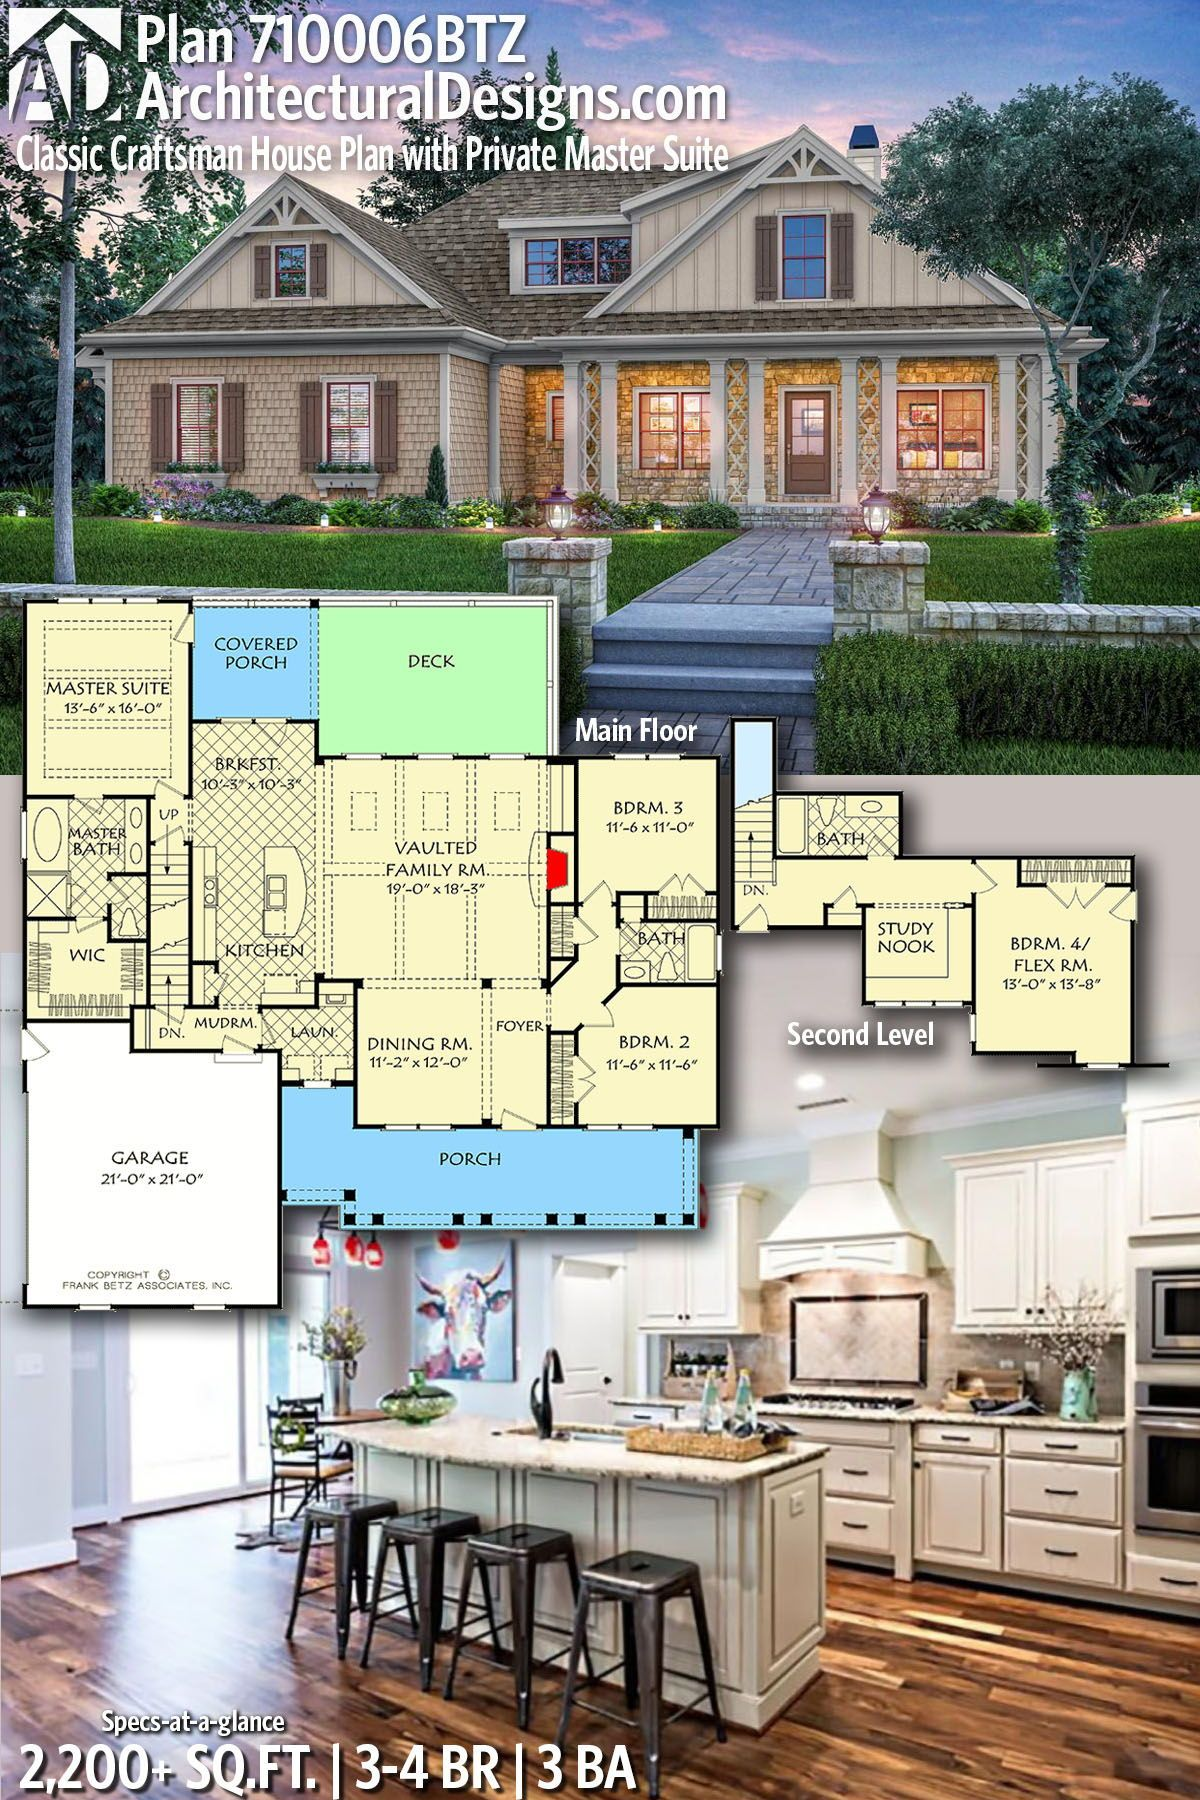 Architectural designs home plan btz gives you bedrooms baths and also rh pinterest